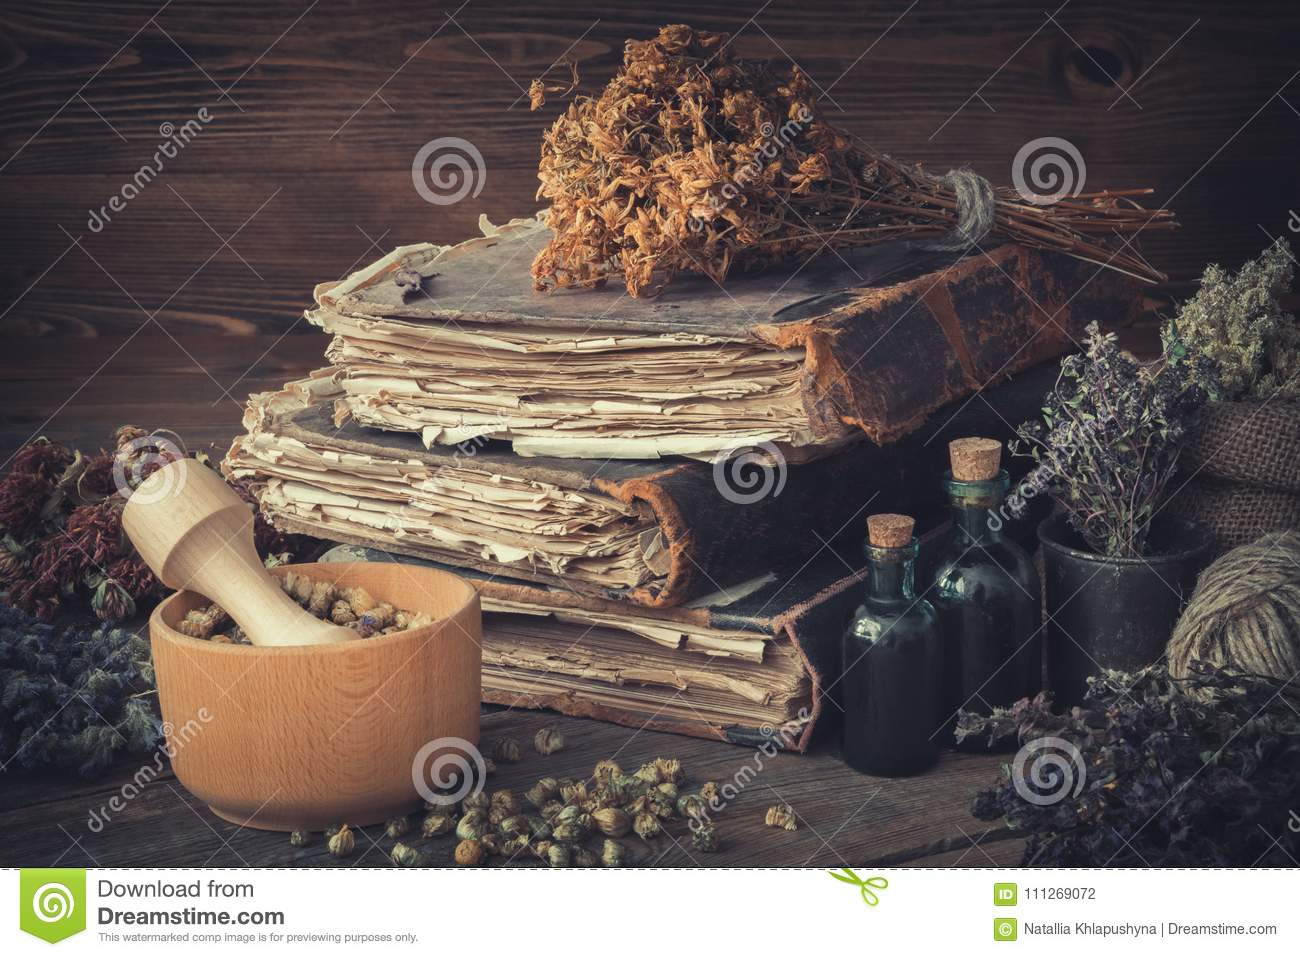 Tincture bottles, bunches of healthy herbs, stack of antique books, mortars, sack of medicinal herbs. Herbal medicine.